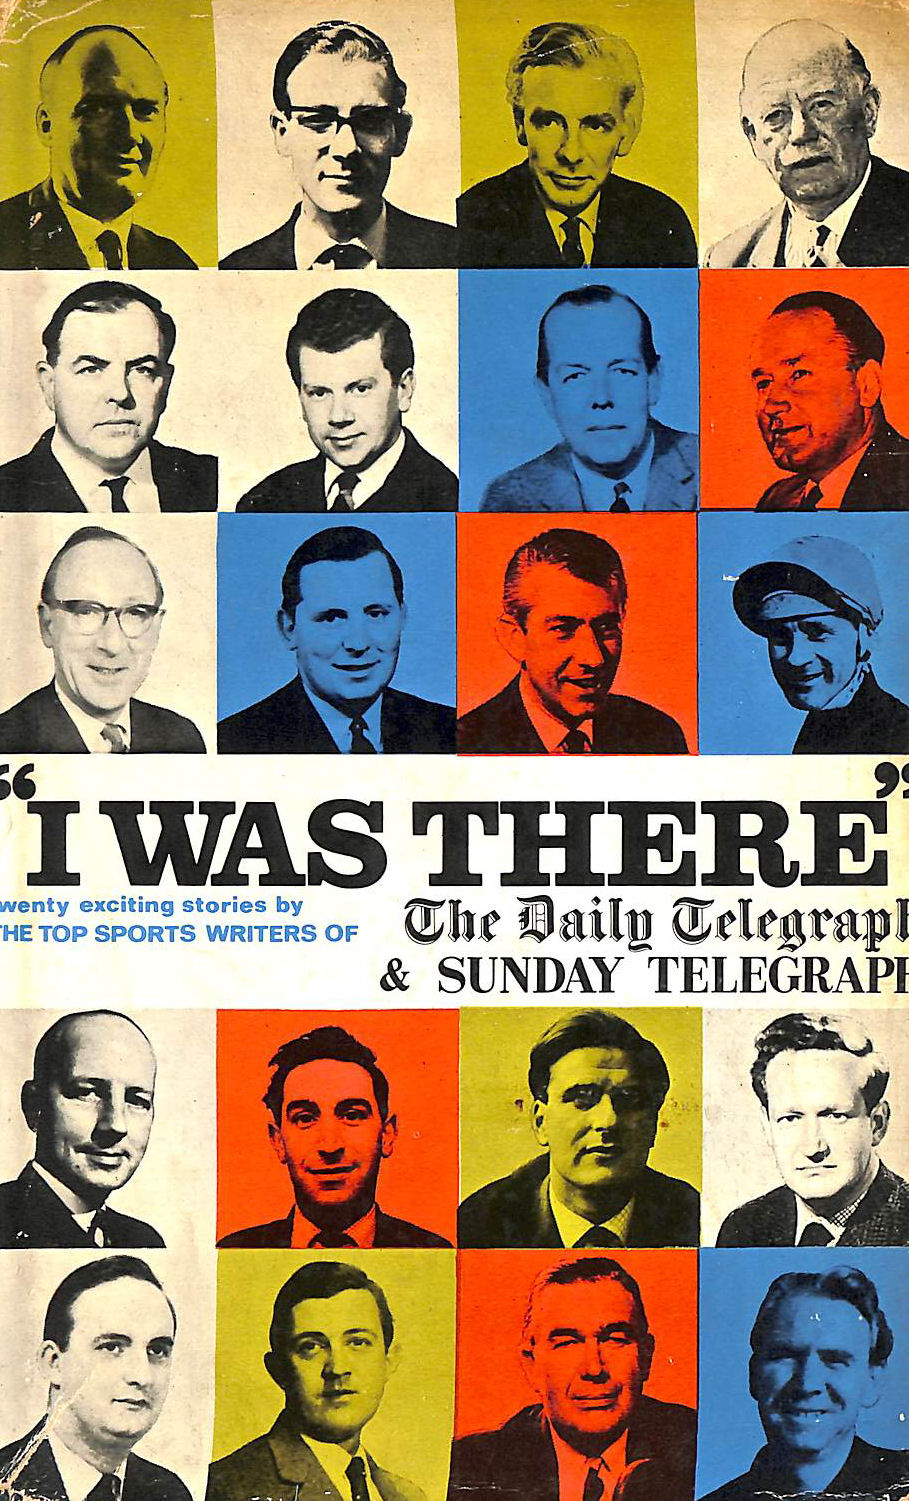 Image for 'I was there': Twenty exciting sporting events by sports writers of the 'Daily Telegraph' and 'Sunday Telegraph'